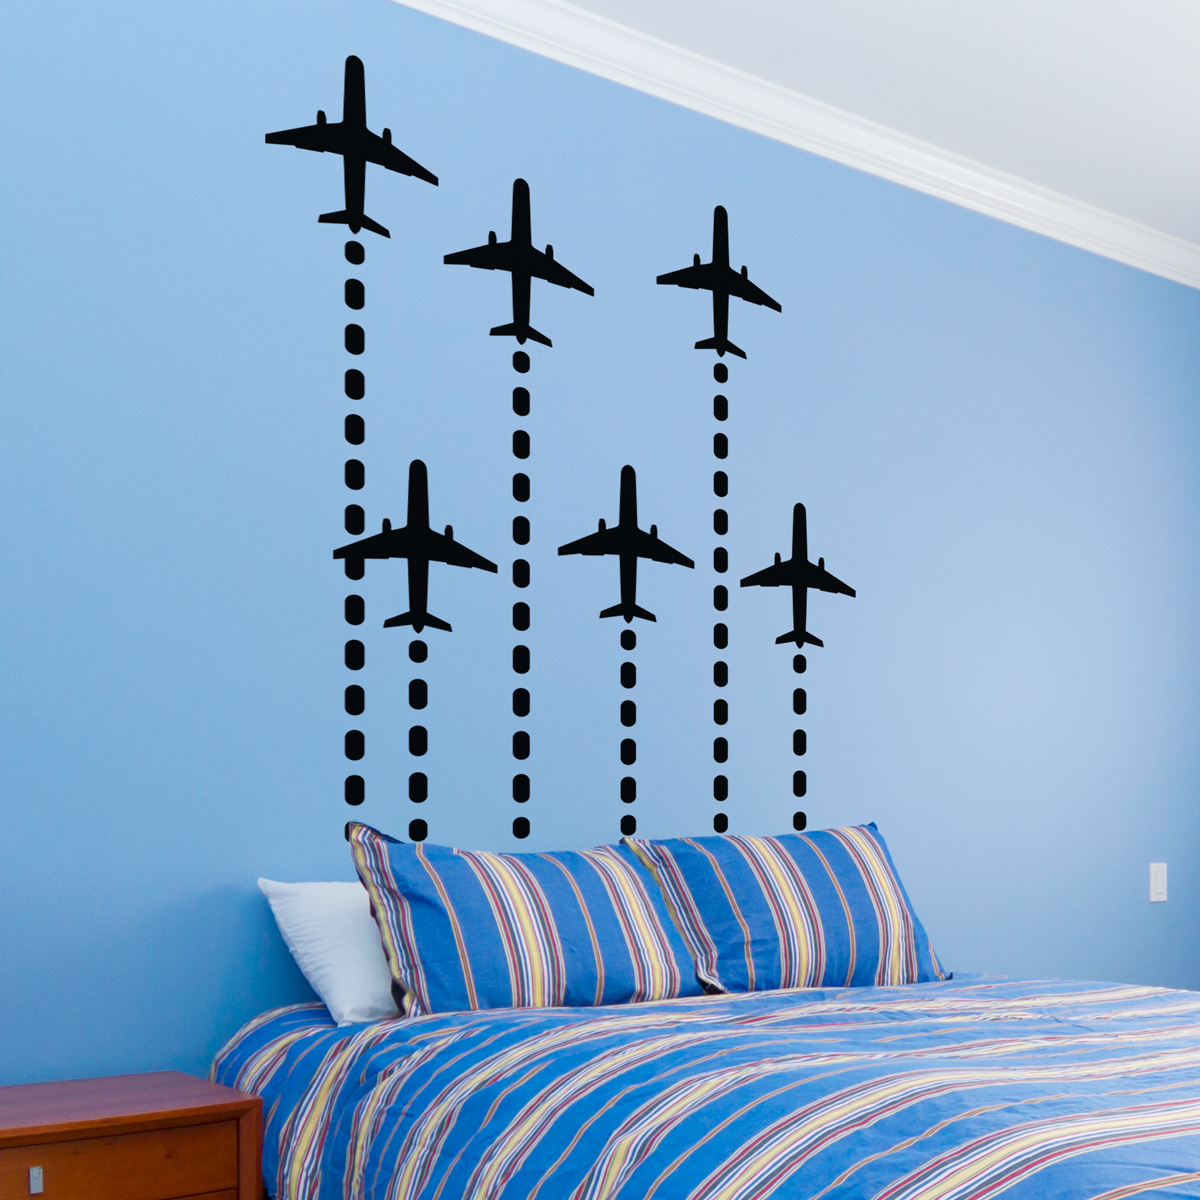 Beau Rocket Planes Wall Decal